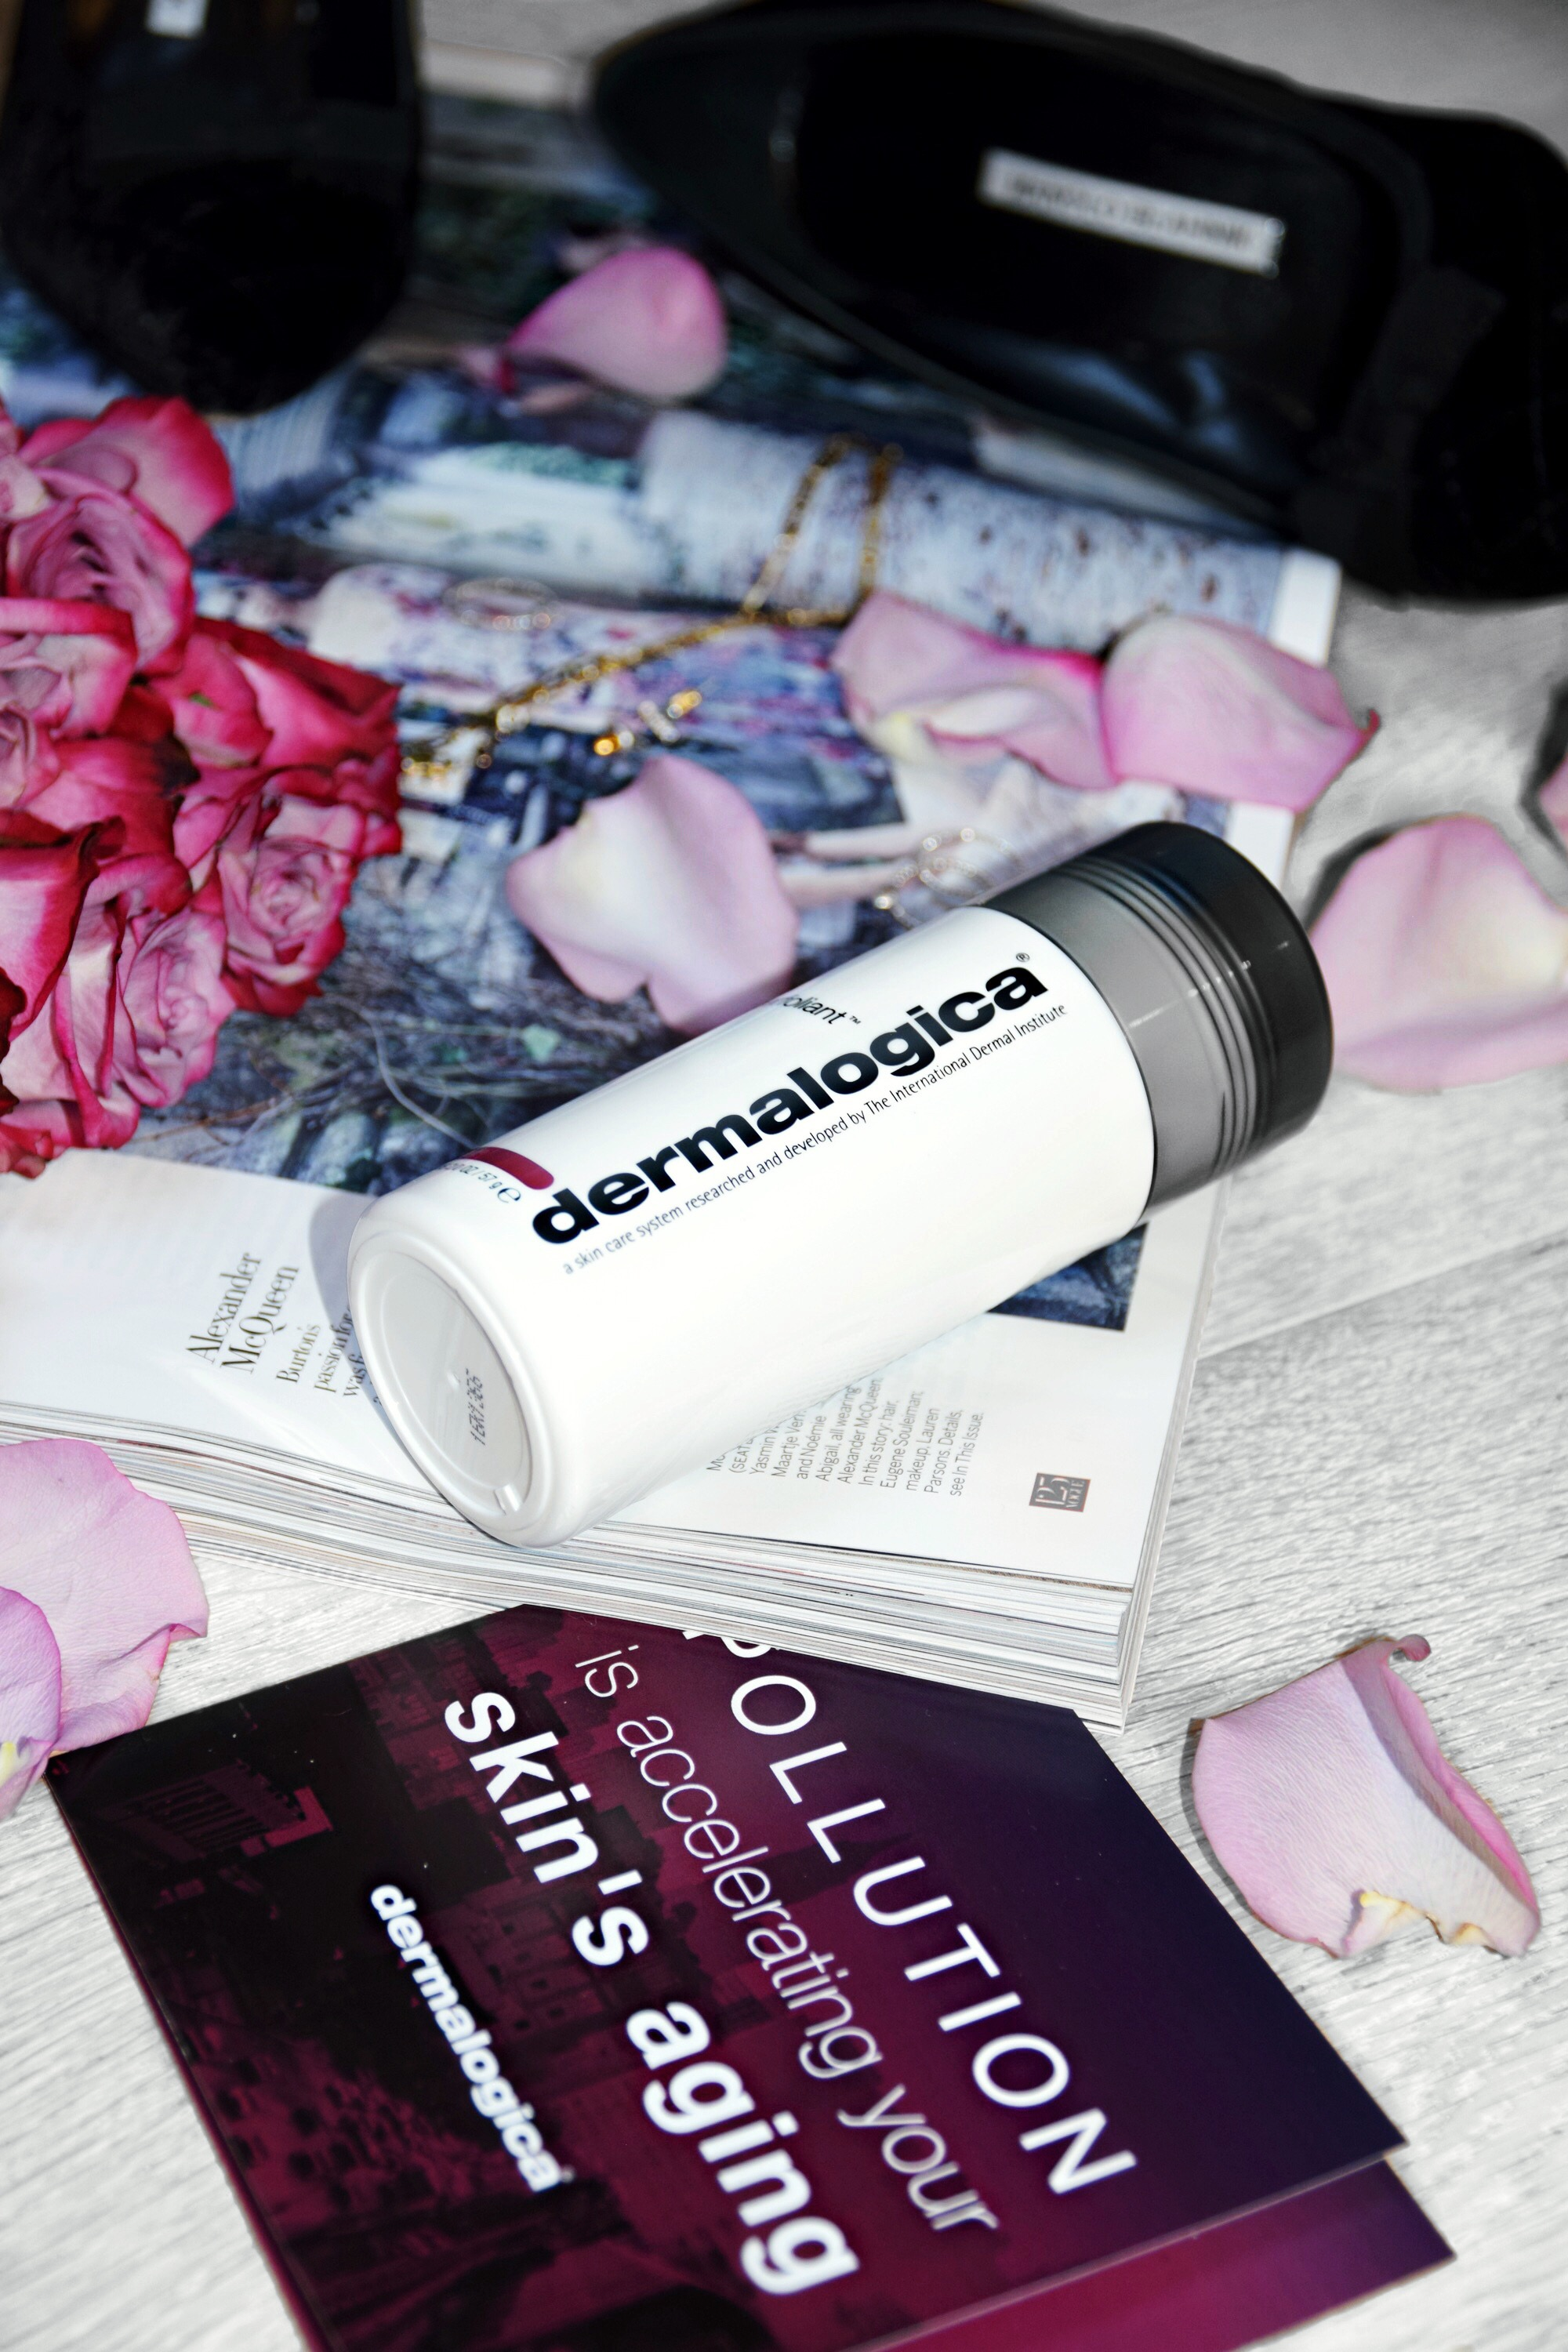 Dermalogica Superfoliant // On My Vanity Beauty Series // Dermalogica Face & Skin Care Exfoliator // Los Angeles Fashion Blogger Daphne Blunt: To Style, With Love